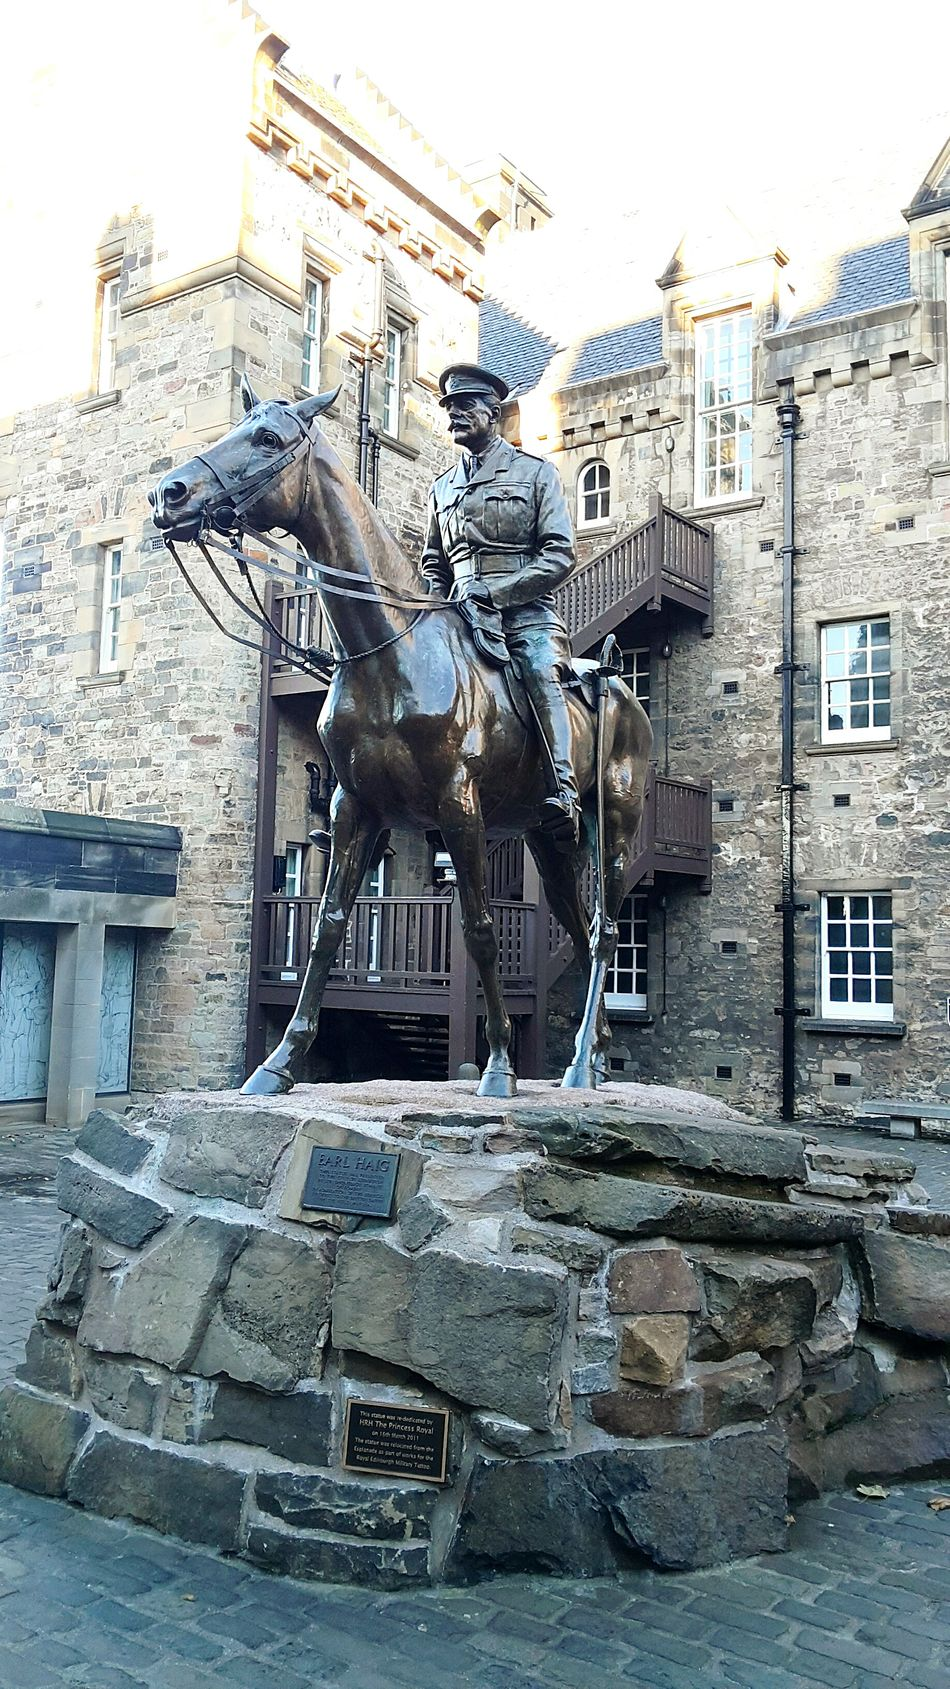 Sculpture Building Exterior Architecture Horse Outdoors Statue City Representing No People Animal Representation Military Military Style Cavalry Monument Monument Valley Cityscape Day Travel Travel Destinations Edimburgh Edimburgh Castle Army Soldier Horse Photography  Celebration Scenics